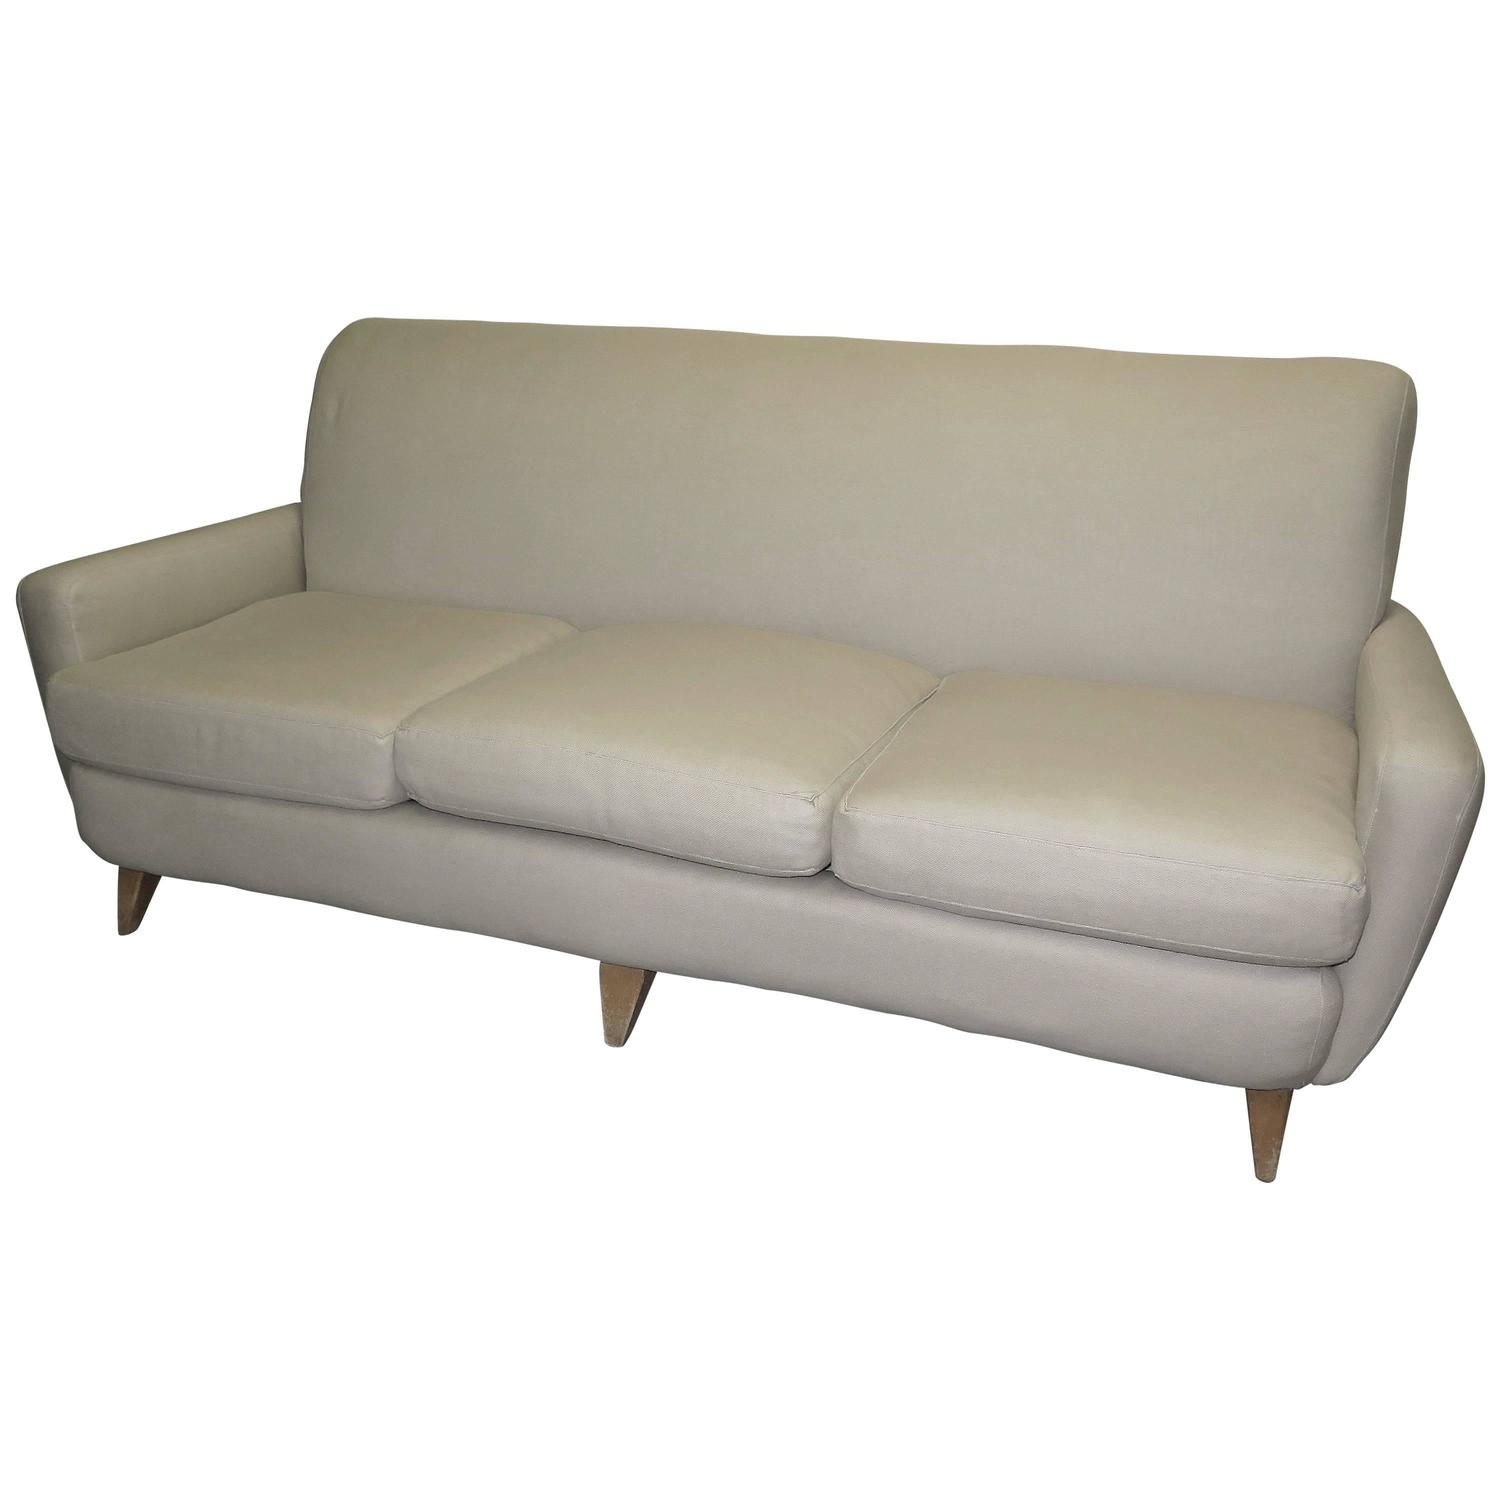 Heywood Wakefield Sofa Leather Sectional Sofa : 3825632z from sofas.solid-frame.com size 1500 x 1500 jpeg 54kB